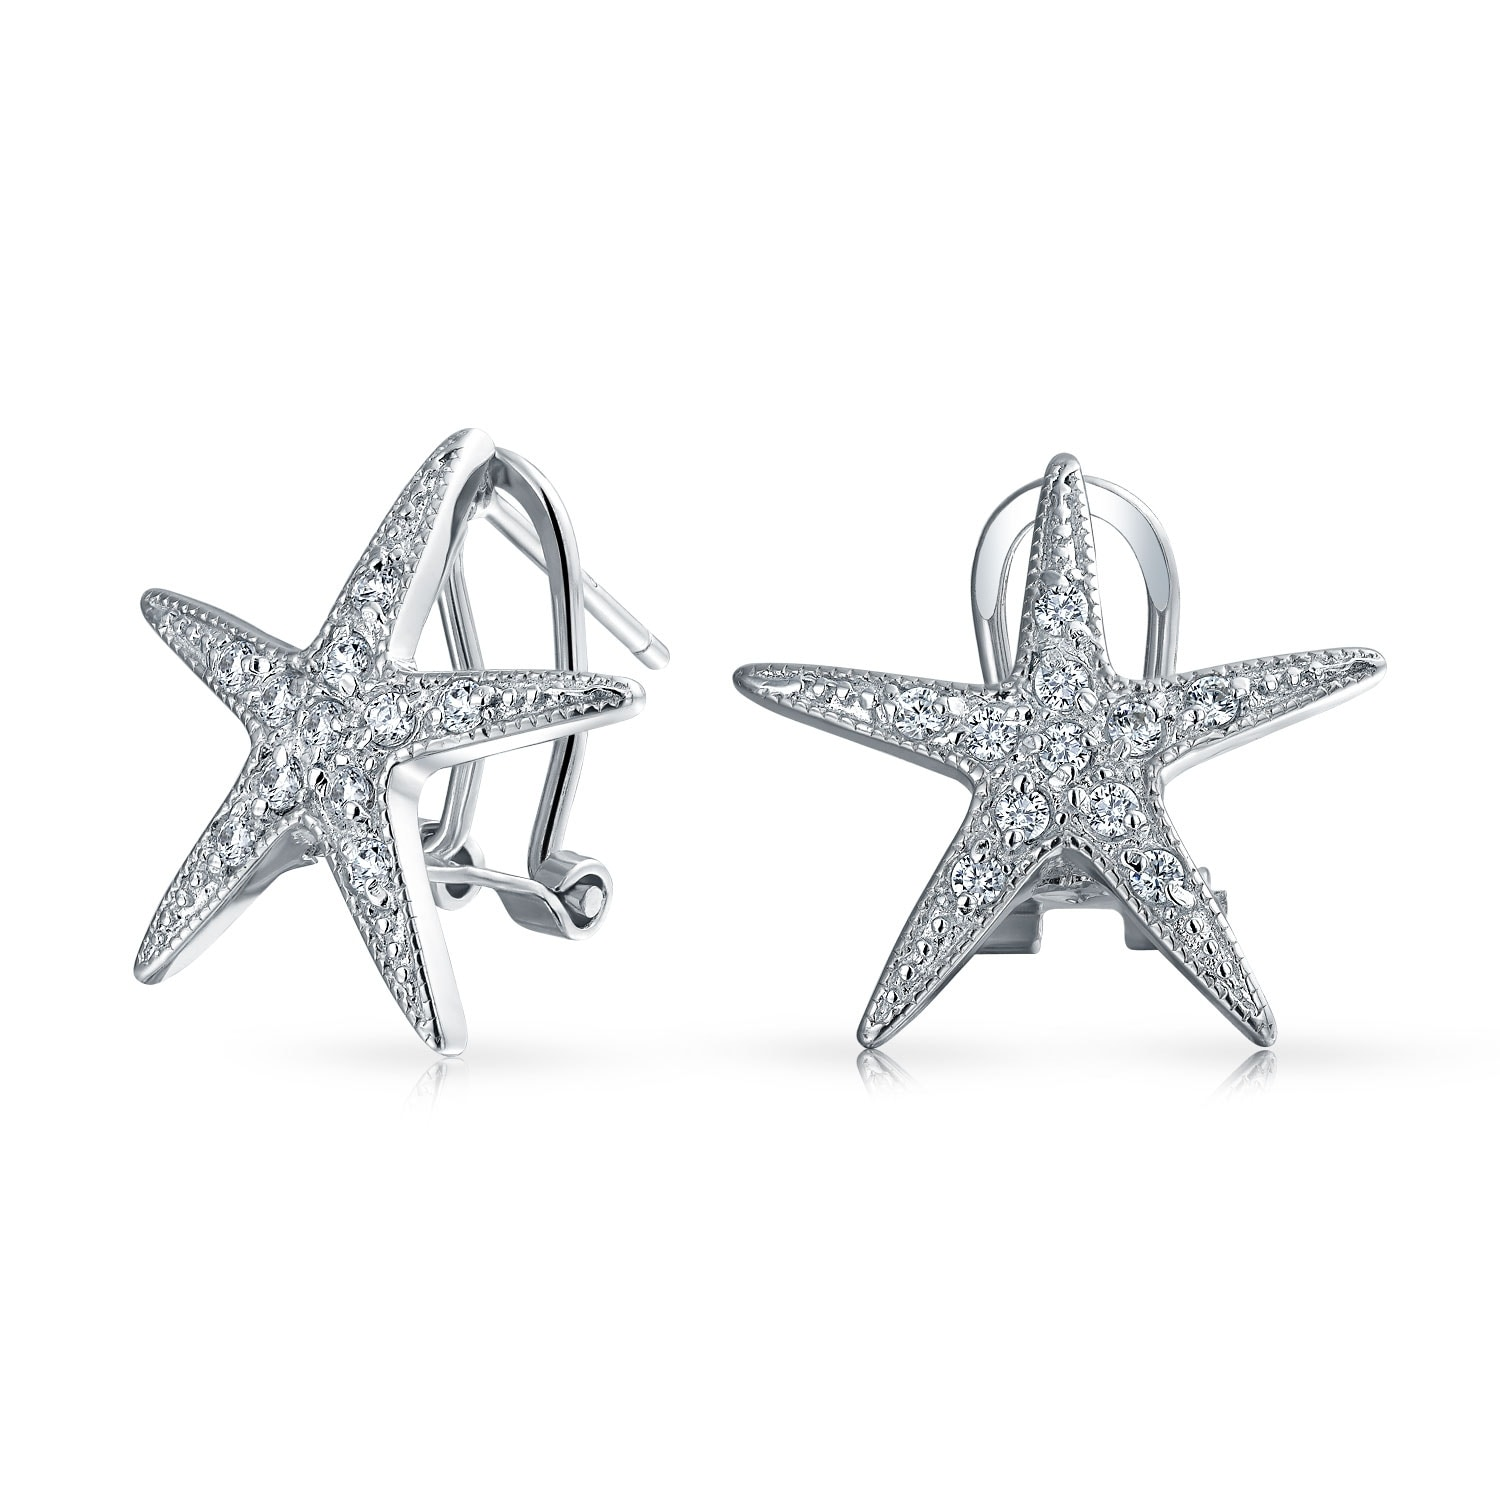 Pave Set Round Clear Cubic Zirconia Starfish Stud Earring Sterling Silver